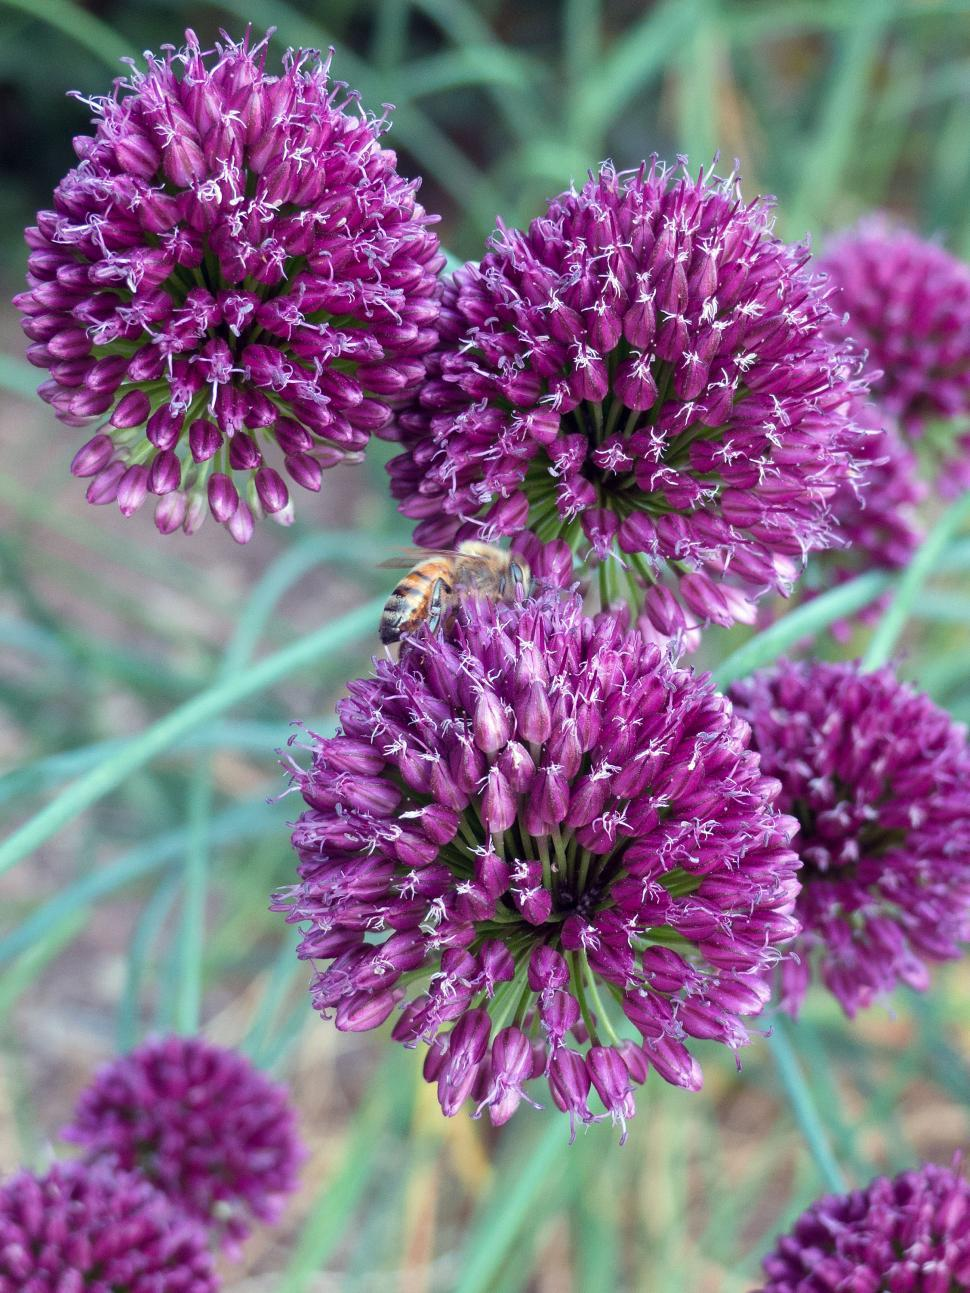 Download Free Stock HD Photo of Group of Purple Allium Flowers Online